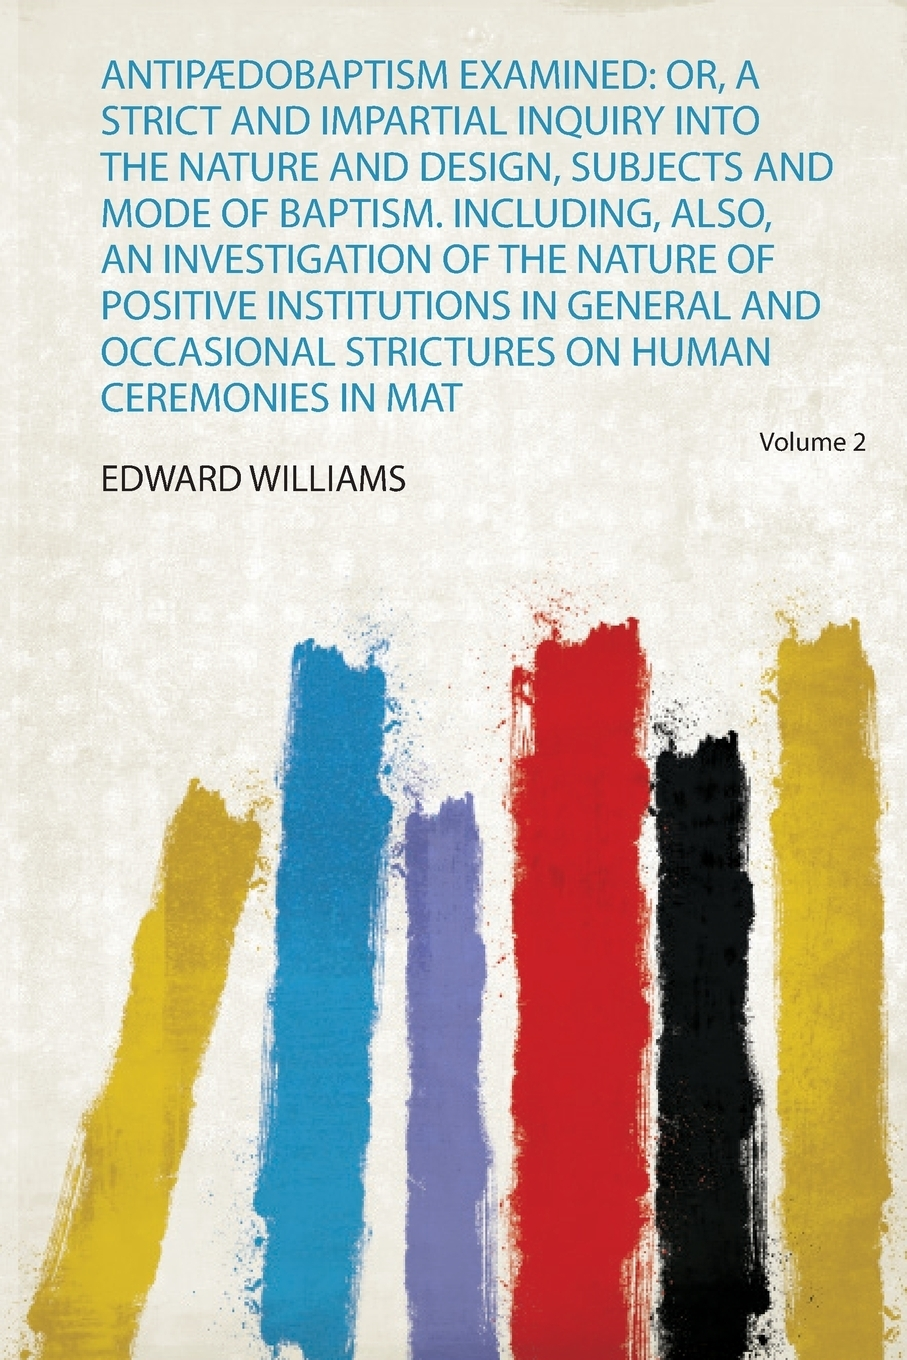 Edward Williams Antipaedobaptism Examined. Or, a Strict and Impartial Inquiry Into the Nature and Design, Subjects and Mode of Baptism. Including, Also, an Investigation of the Nature of Positive Institutions in General and Occasional Strictures on Human Ceremoni... an examination of the bible or an impartial investigation of supernatural and natural theology wherein the foundations of true religion are illustrated and established to which are added a rational system of faith and remarks on the union of